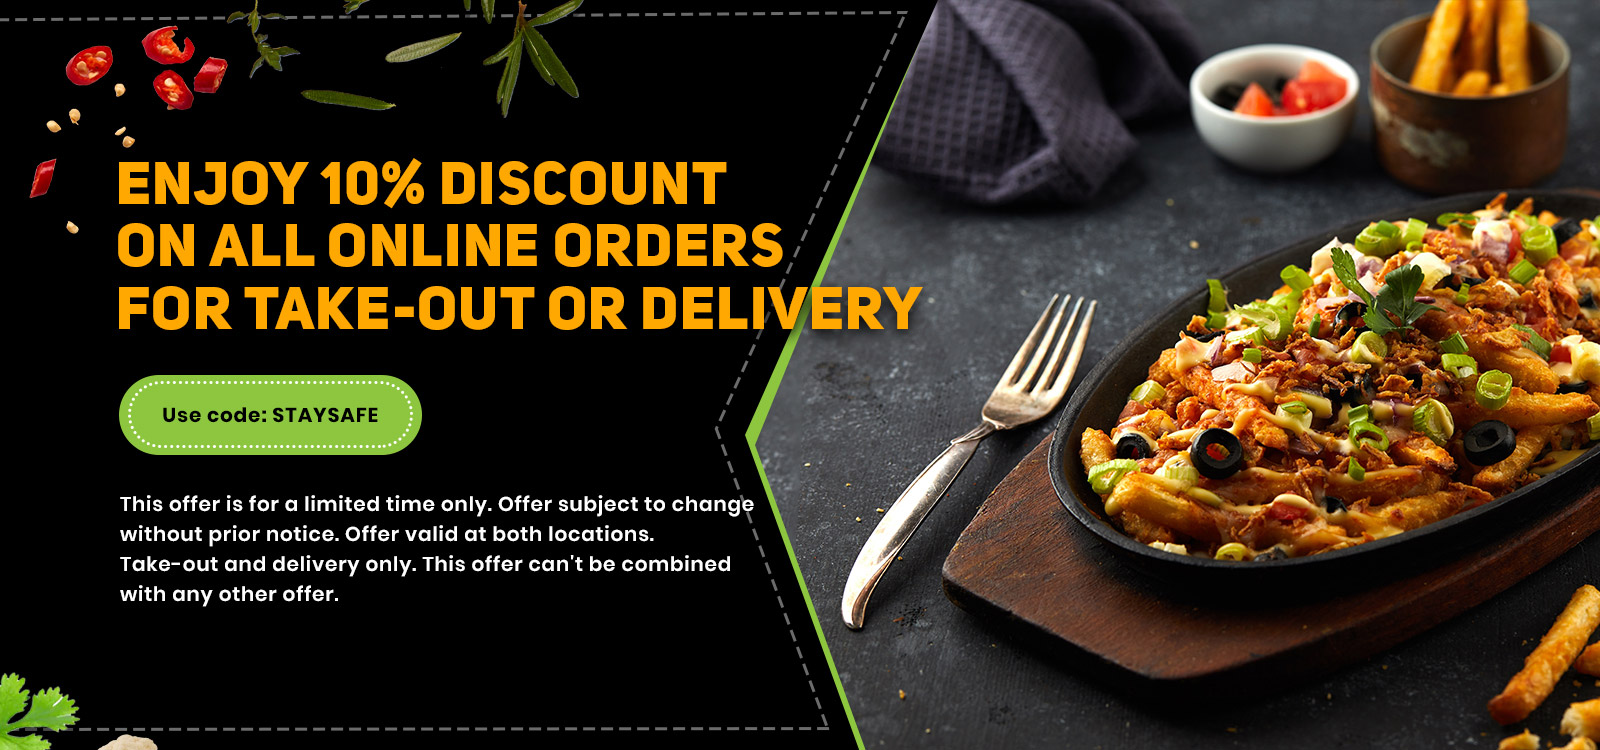 Enjoy 10% off on all online orders